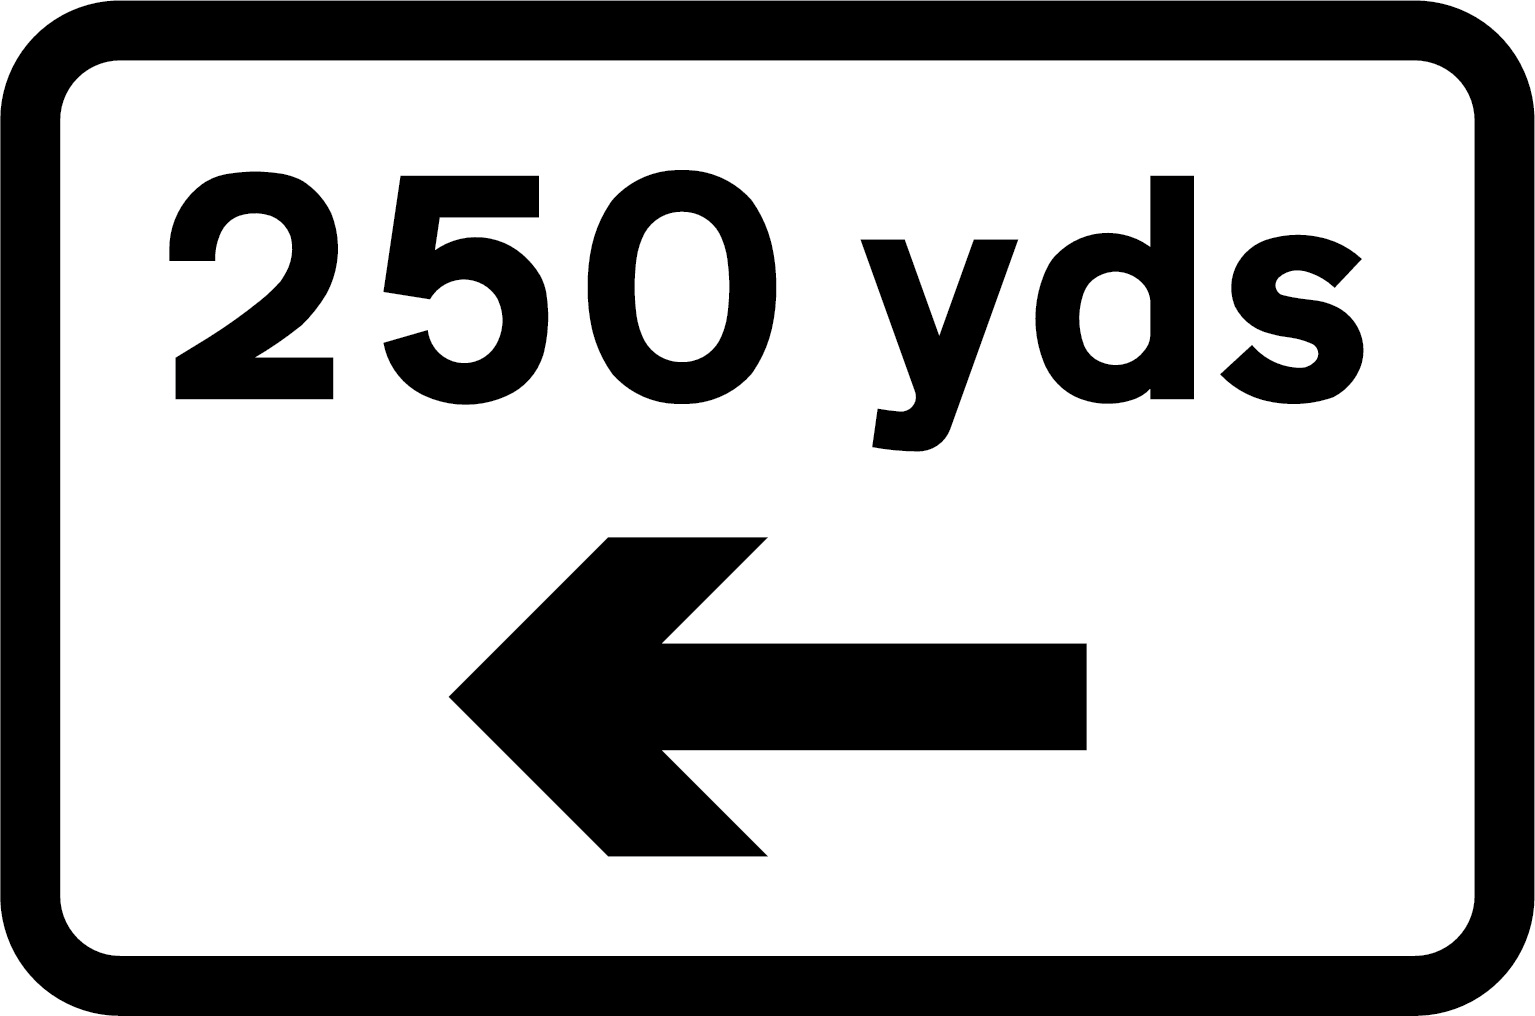 250 yards sign